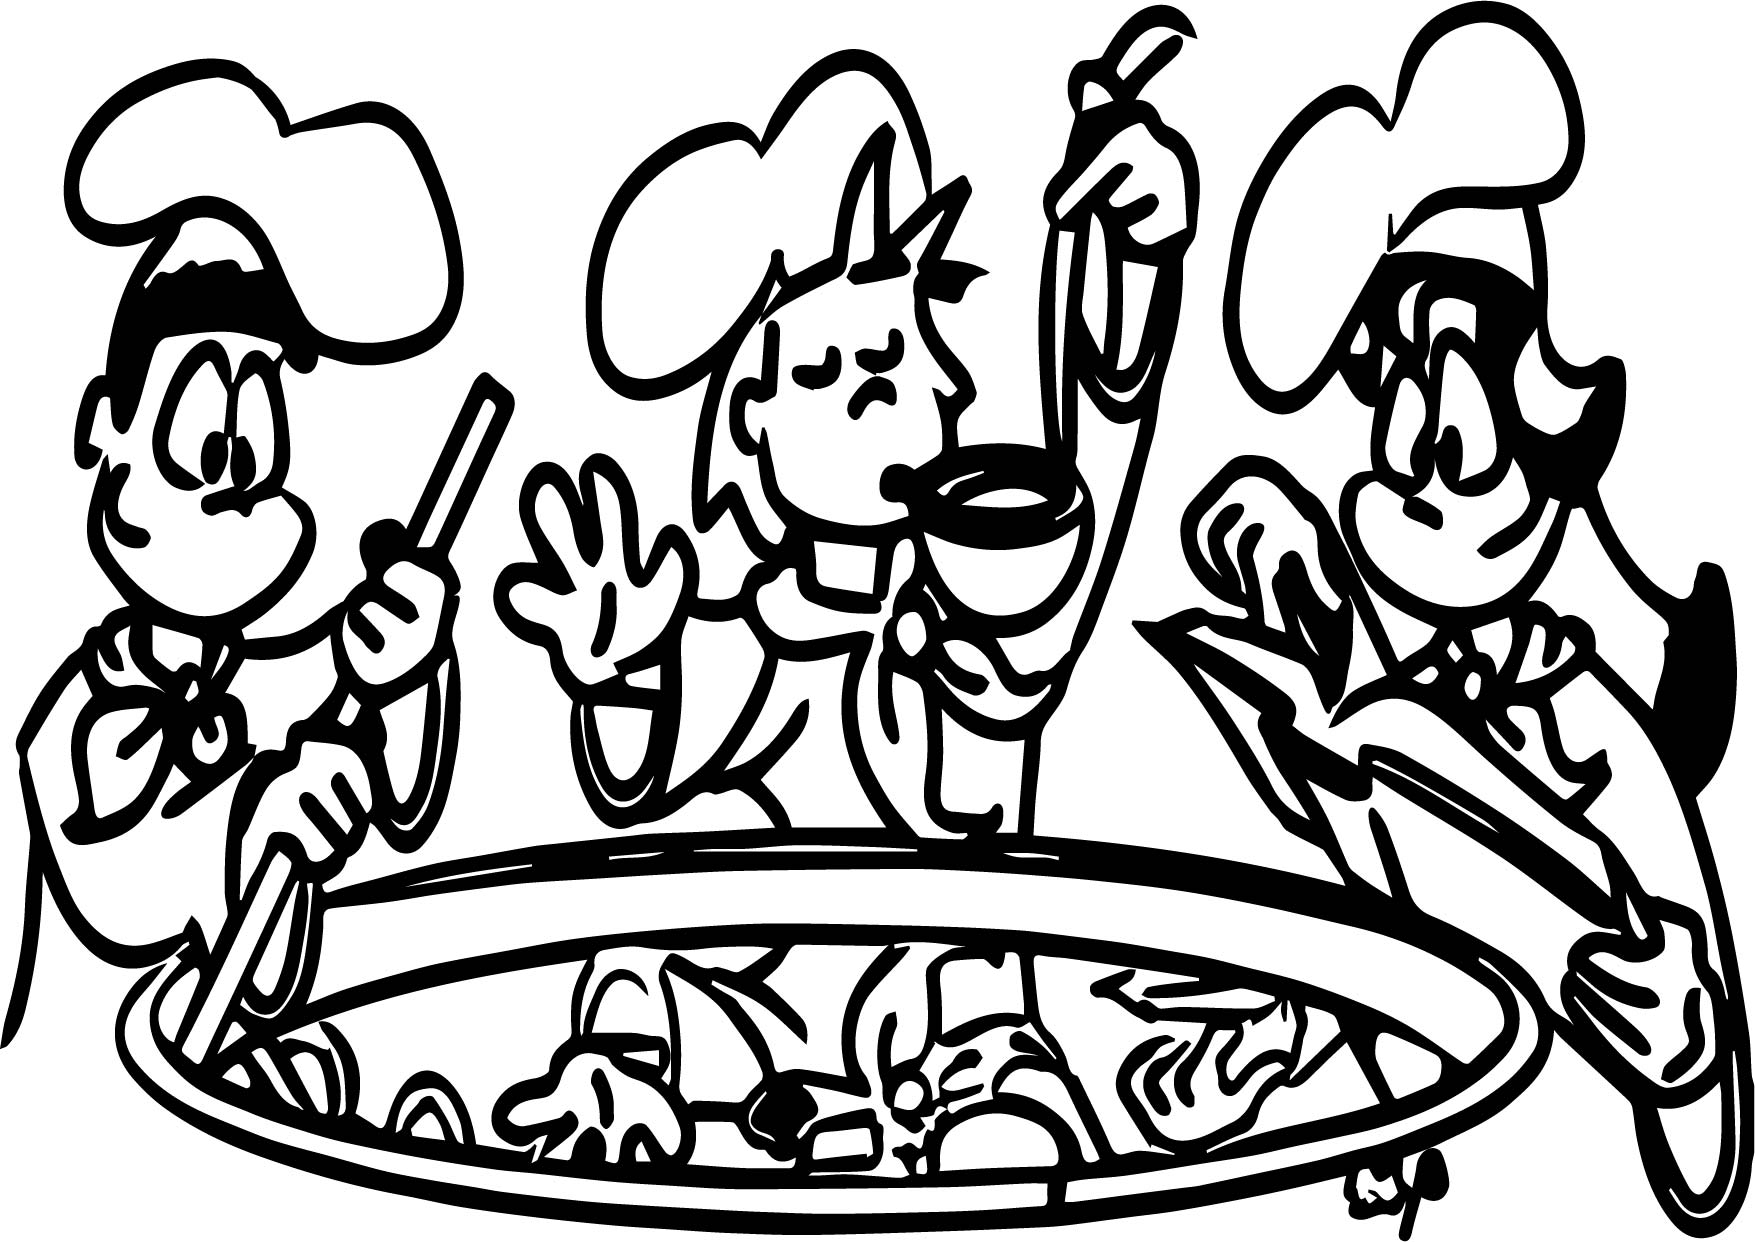 Kids Cooking Color Coloring Page Wecoloringpage